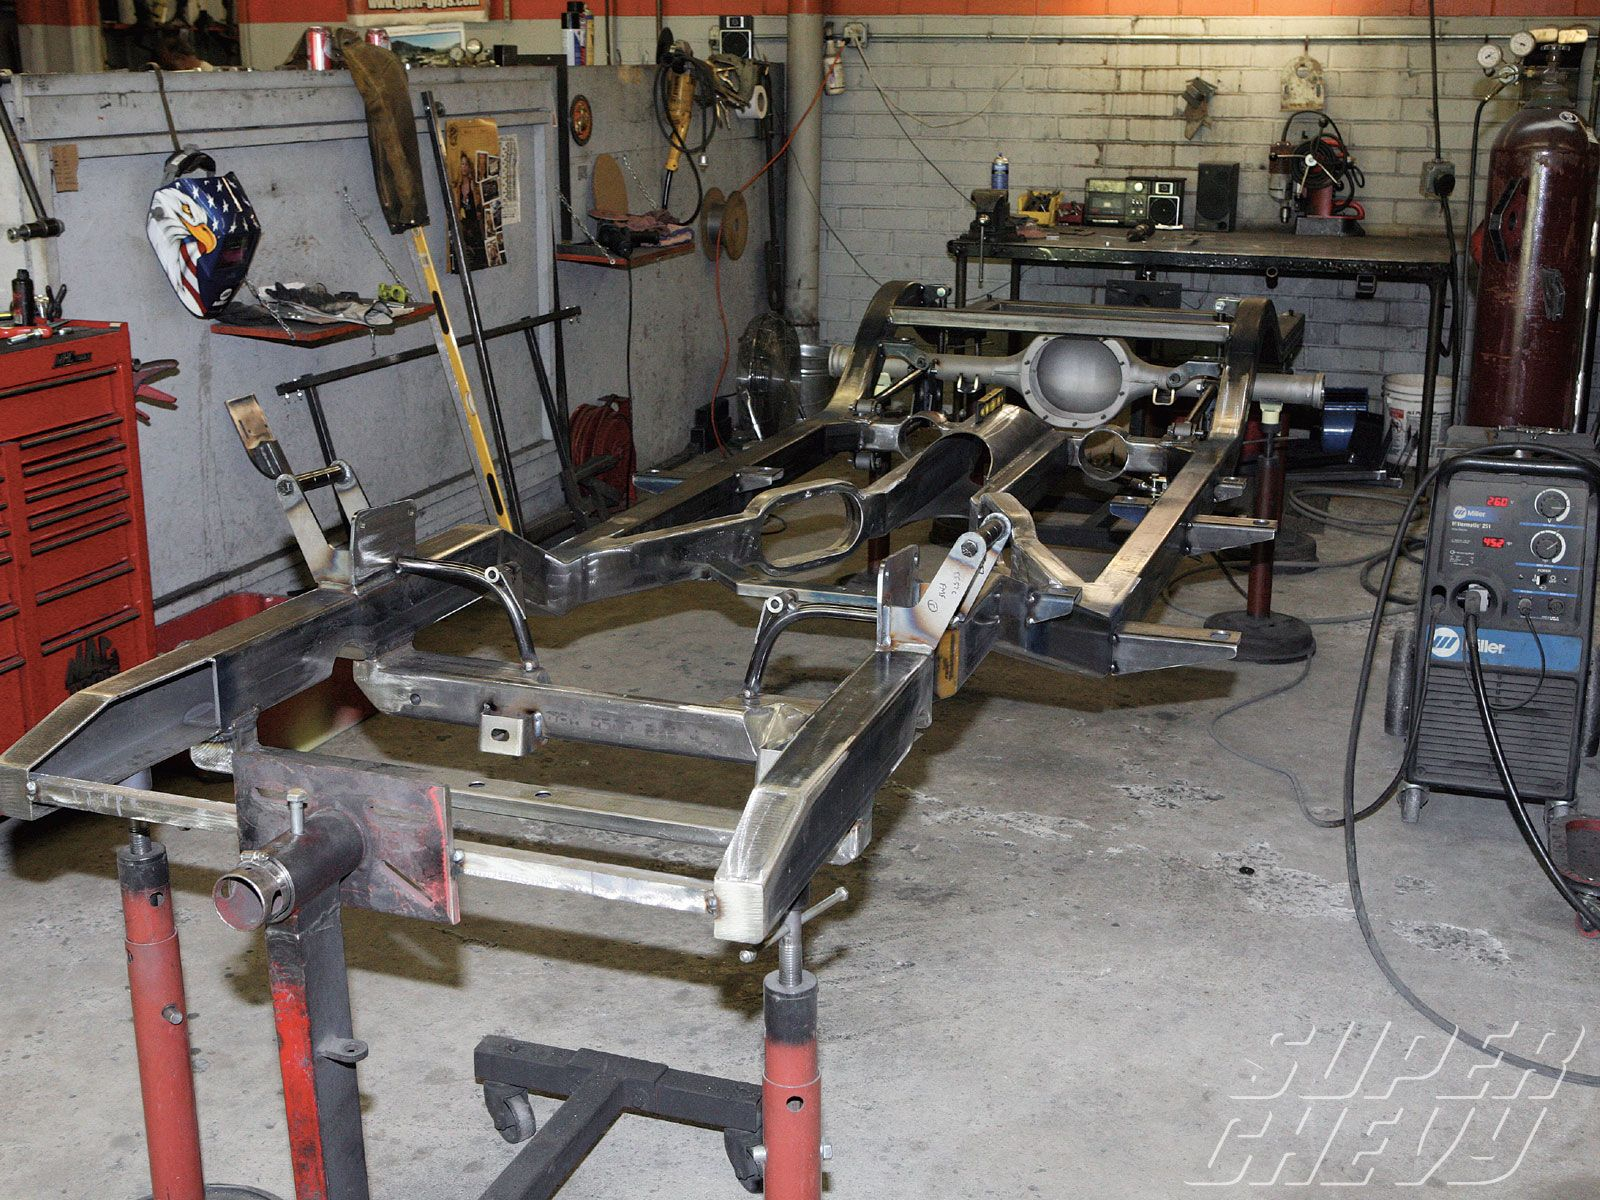 20+ Tube Chassis Fabrication Pictures and Ideas on Weric